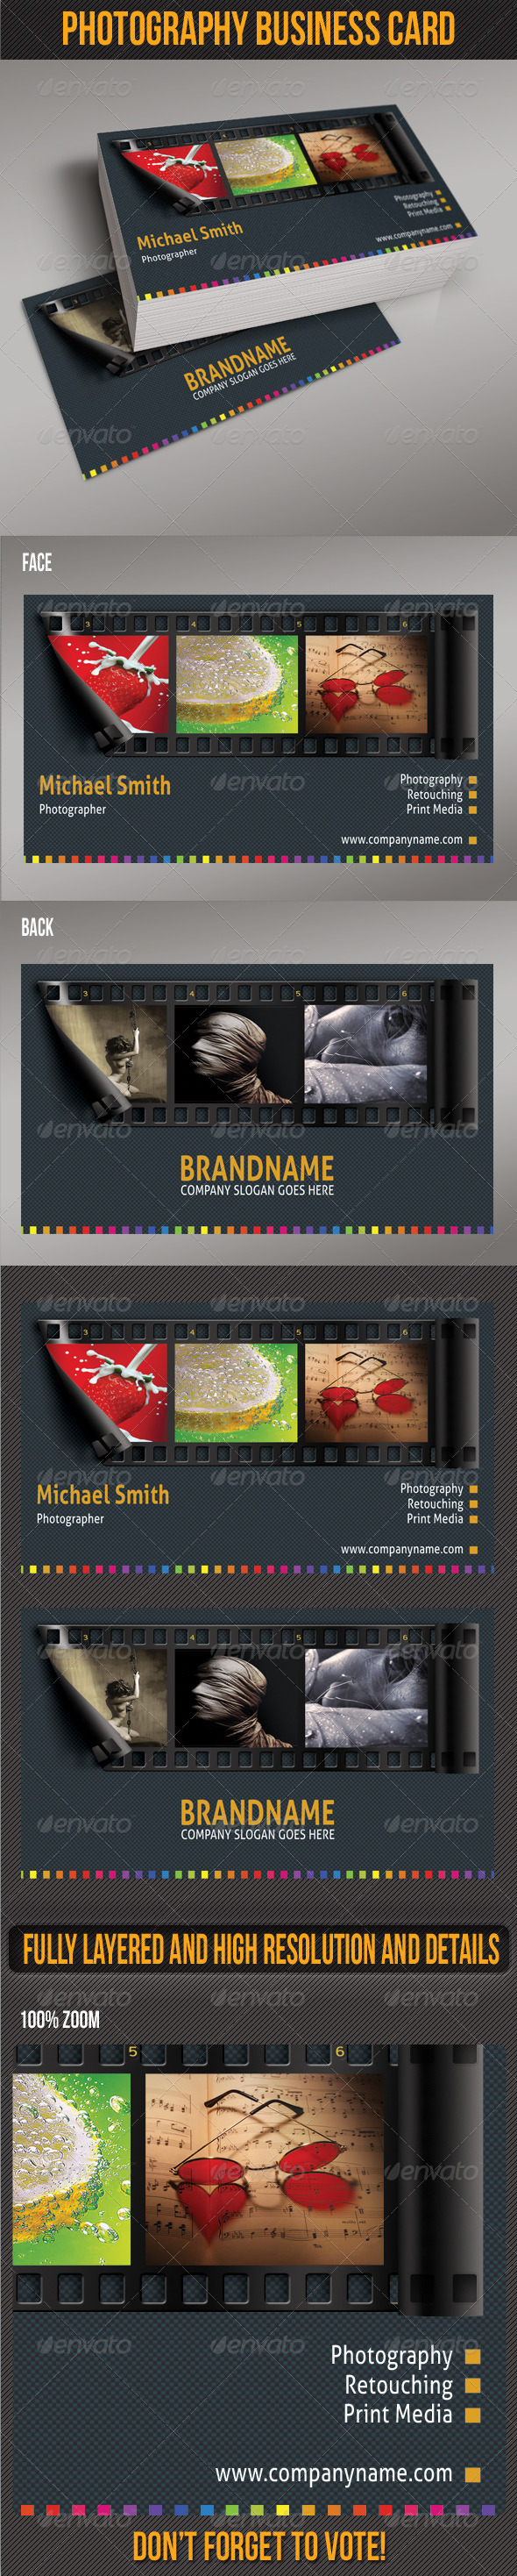 GraphicRiver Photography Business Card 4958133